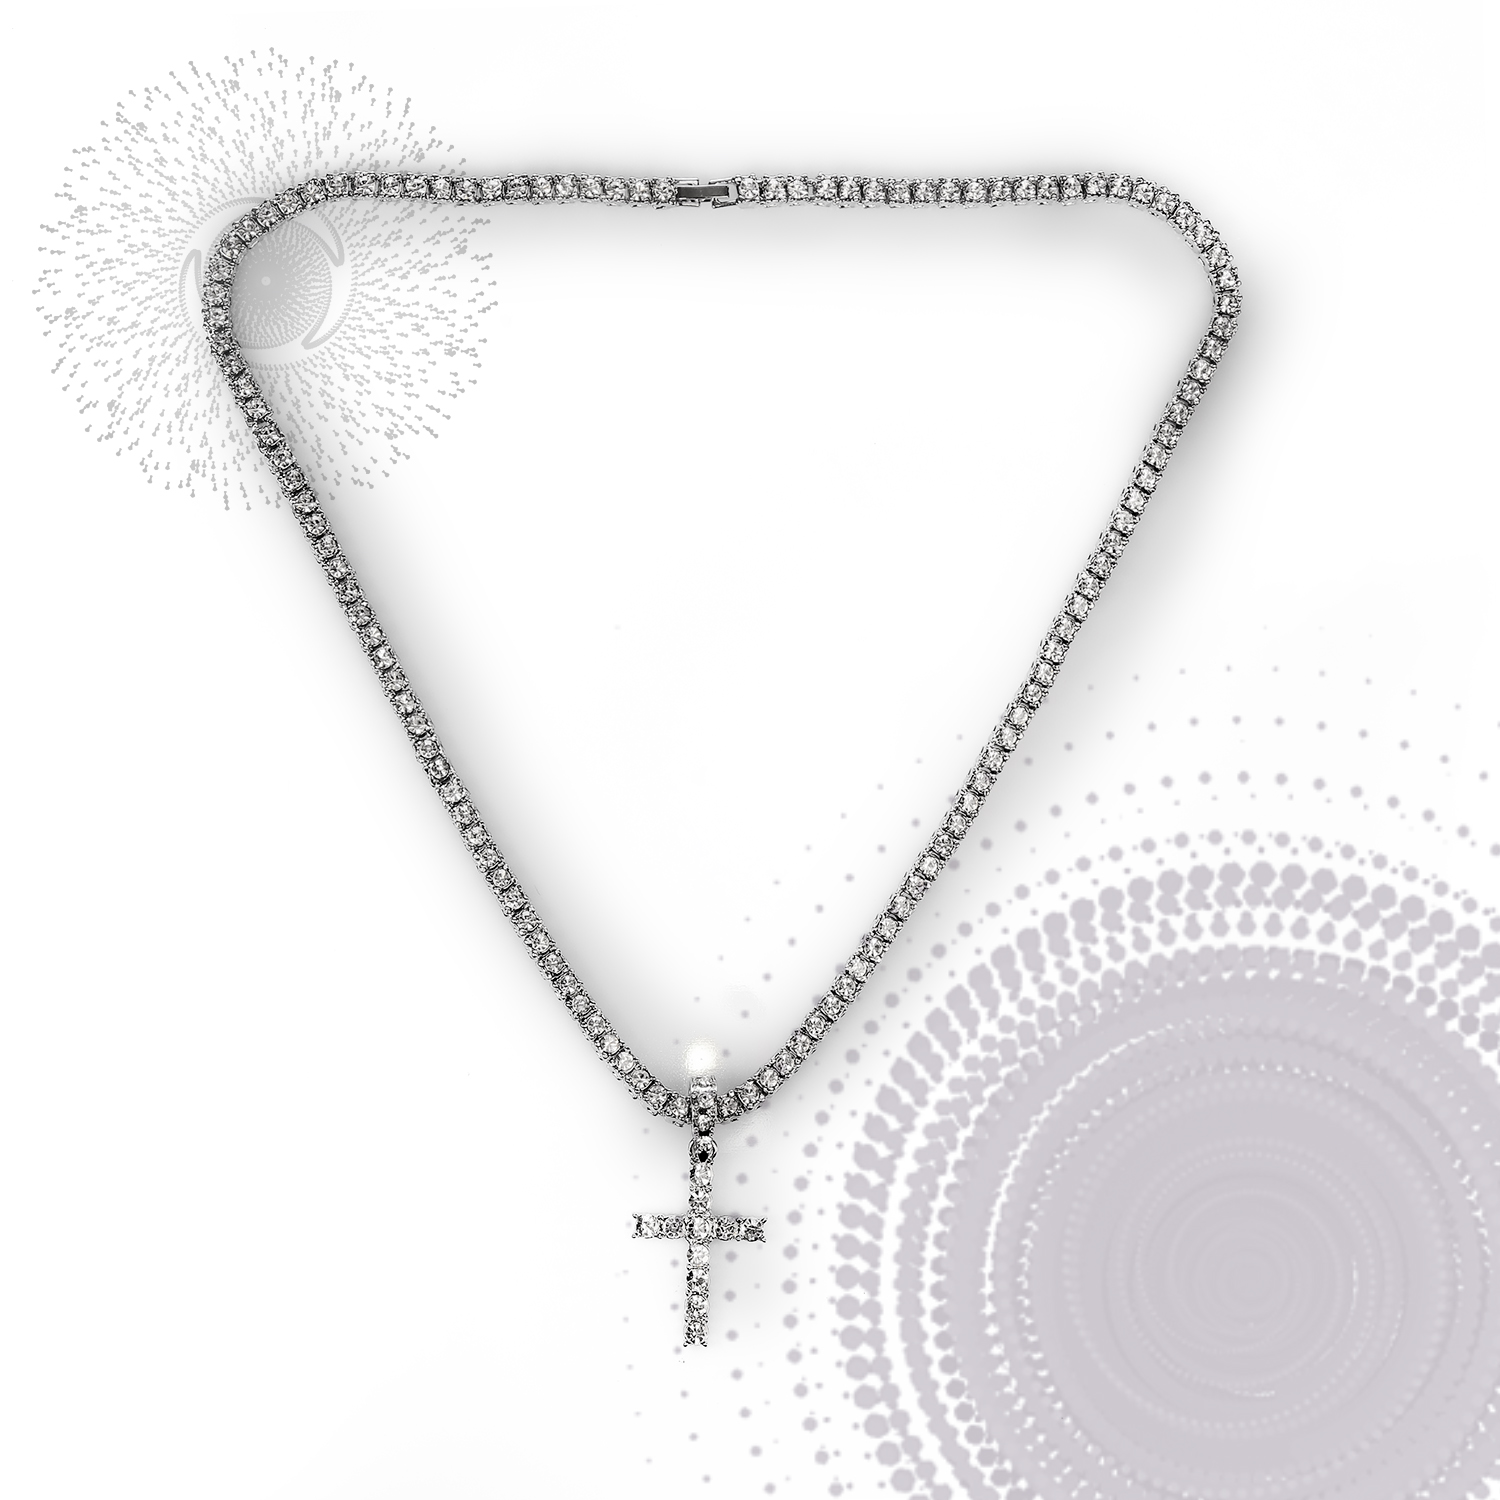 necklace 2 -7.jpg